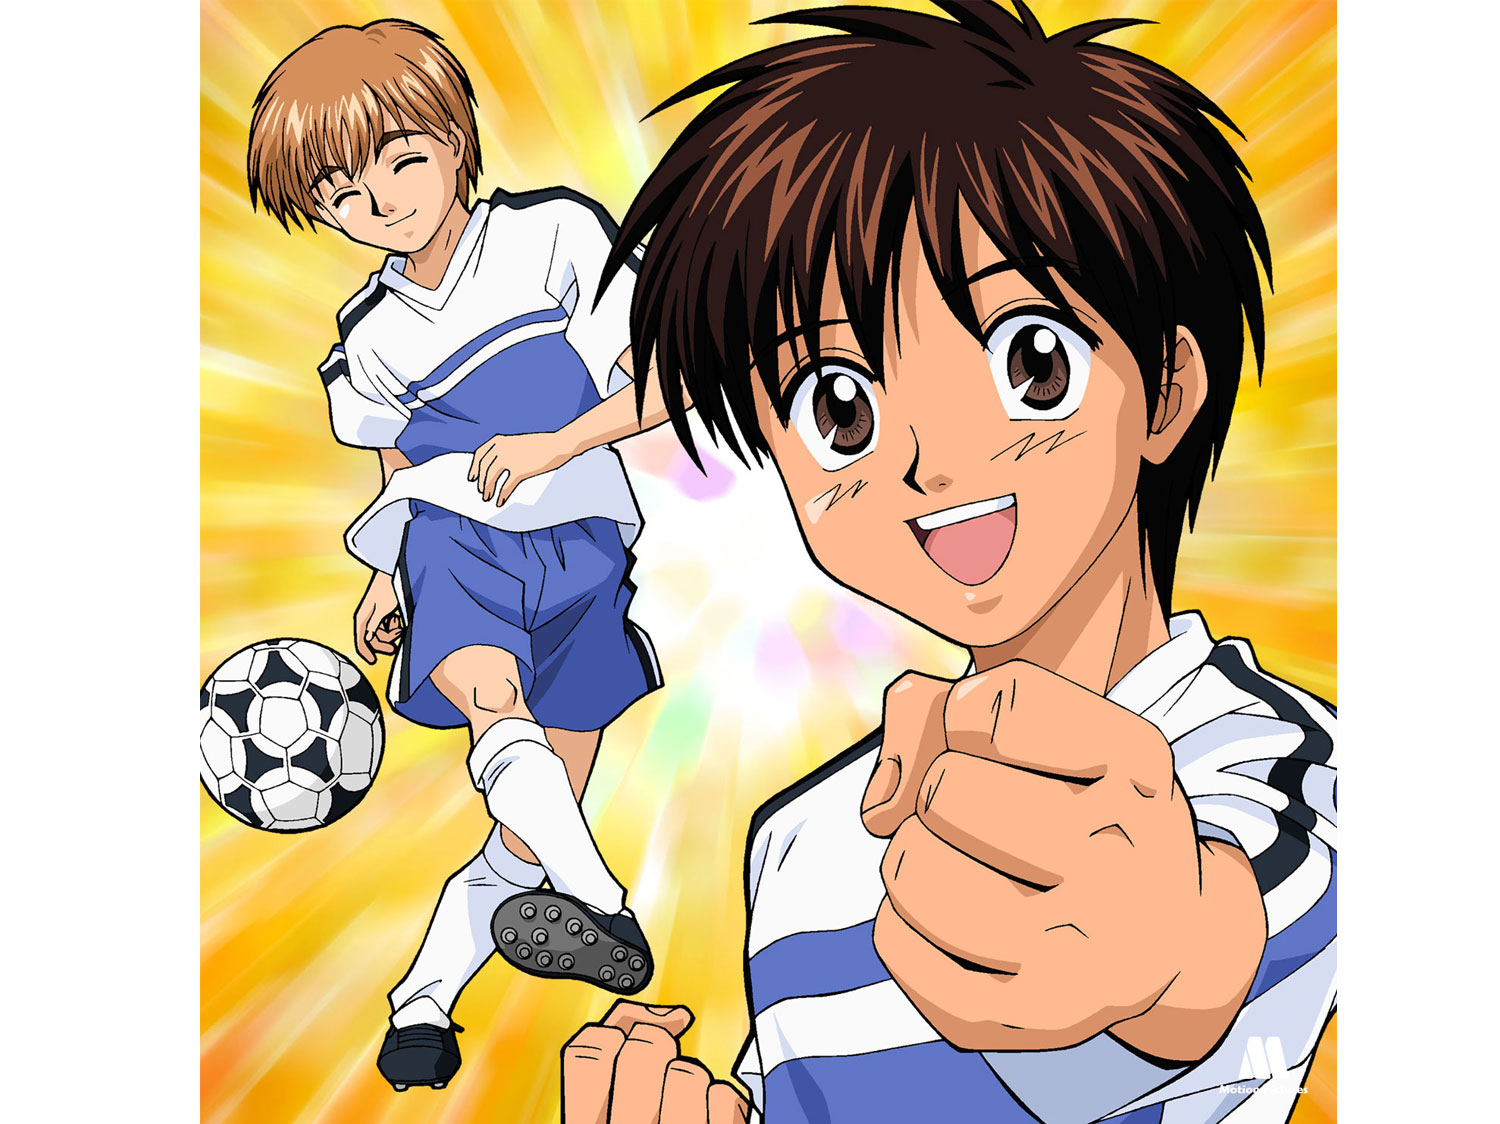 optimismo, Dream Team, dibujos animados futbol, soccer anime japanese series